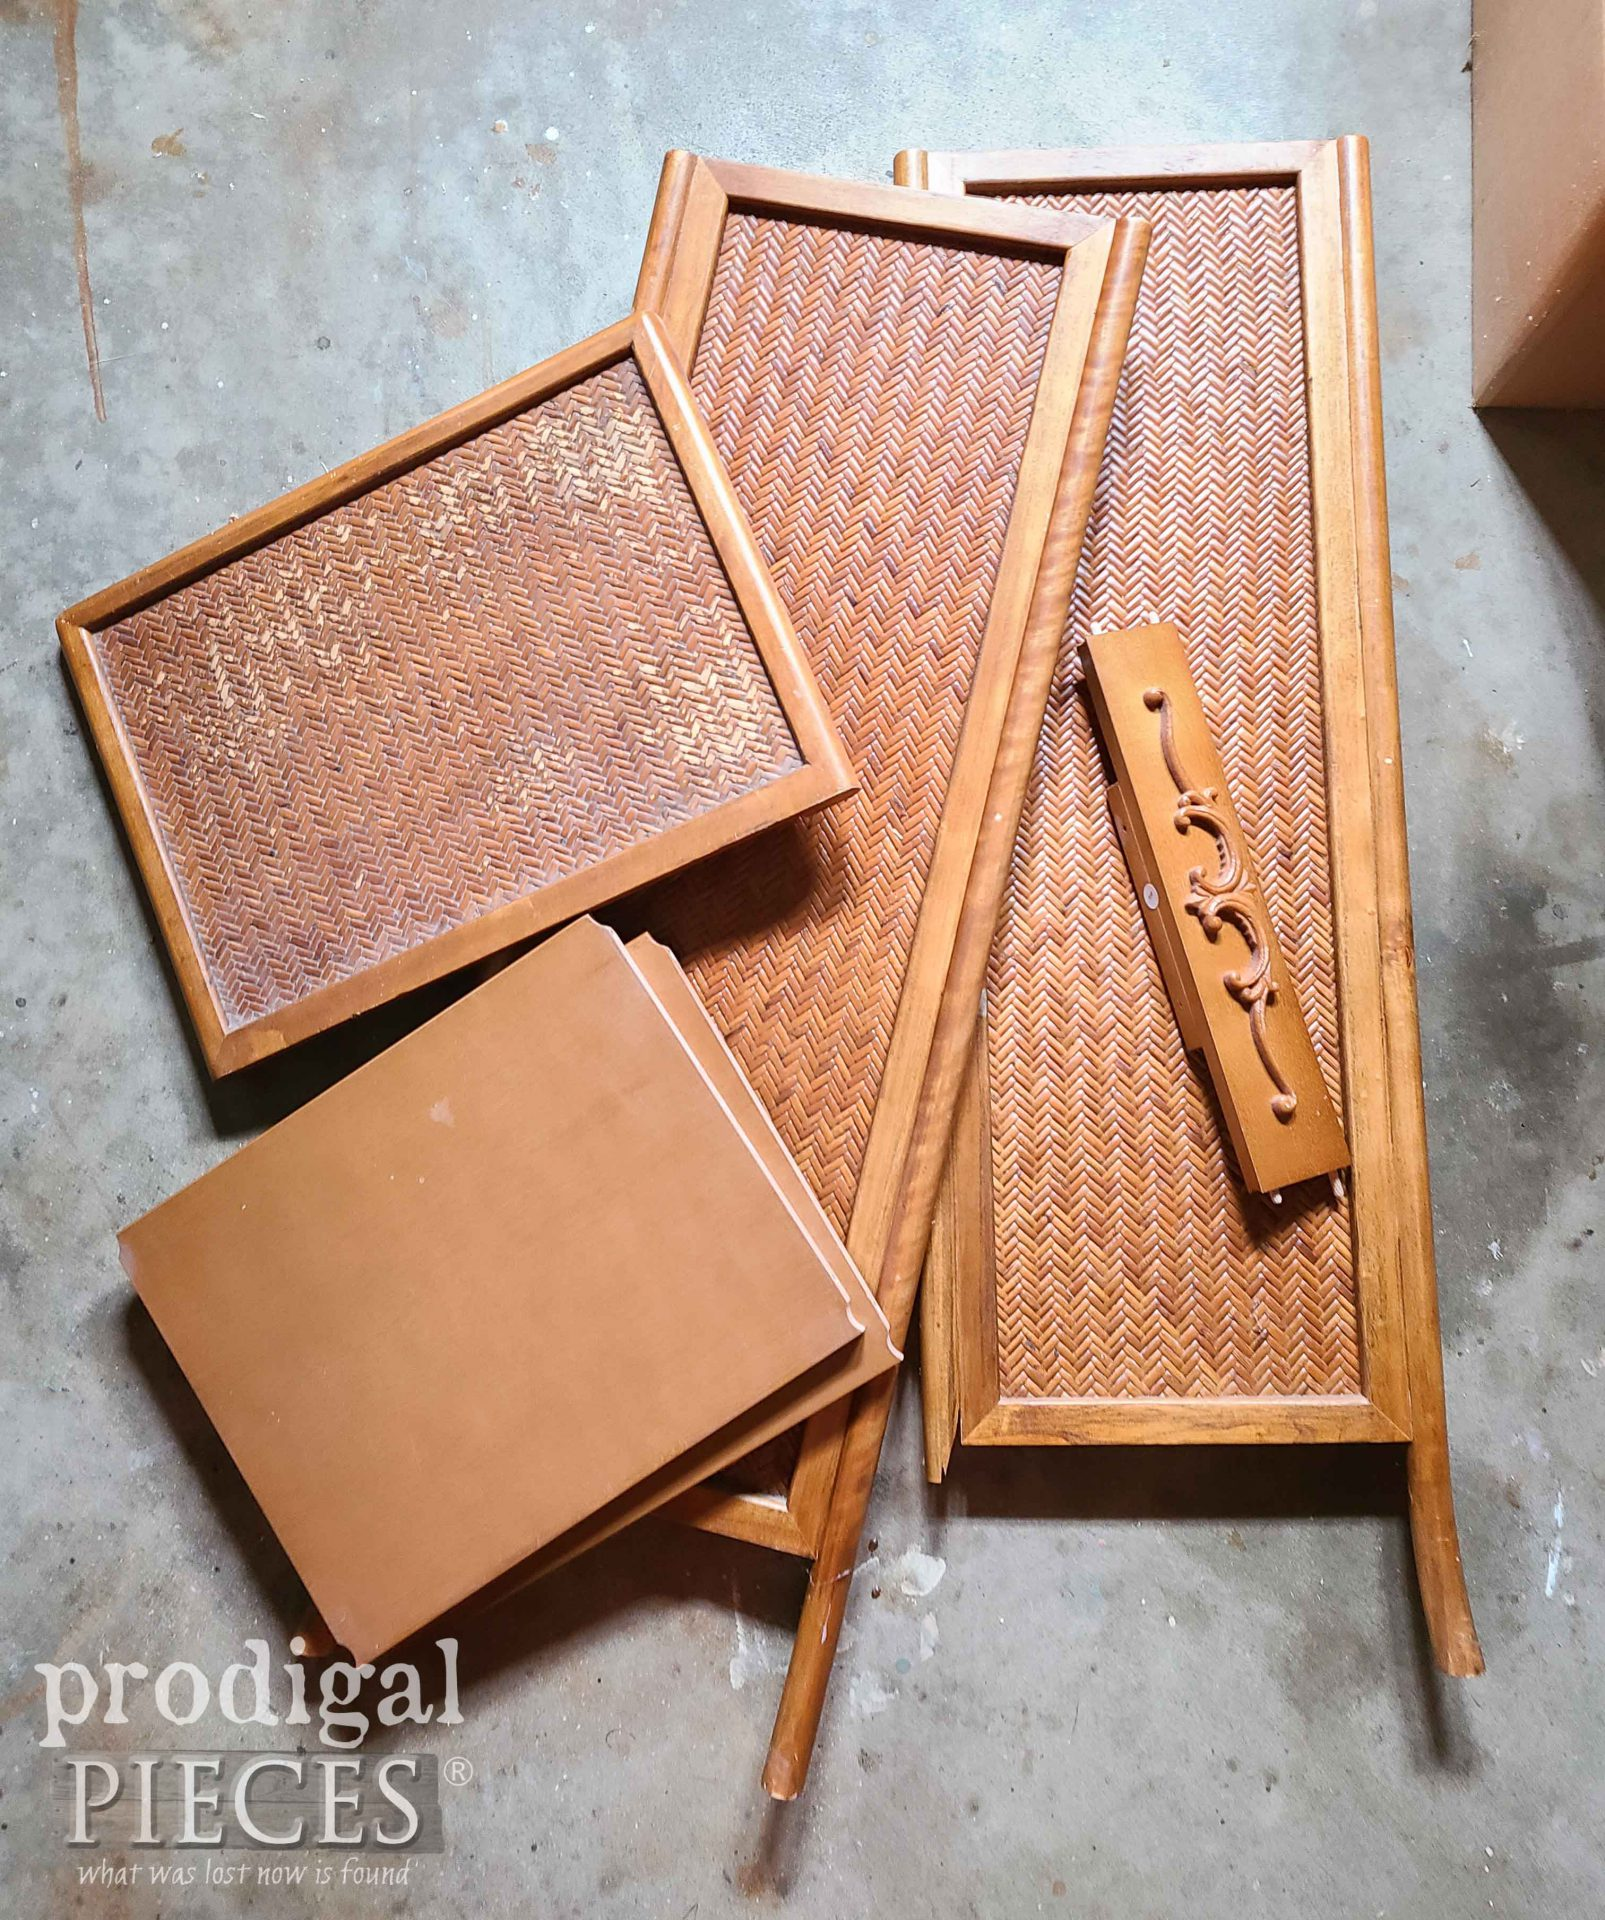 Broken Furniture Stand in PIeces | prodigalpieces.com